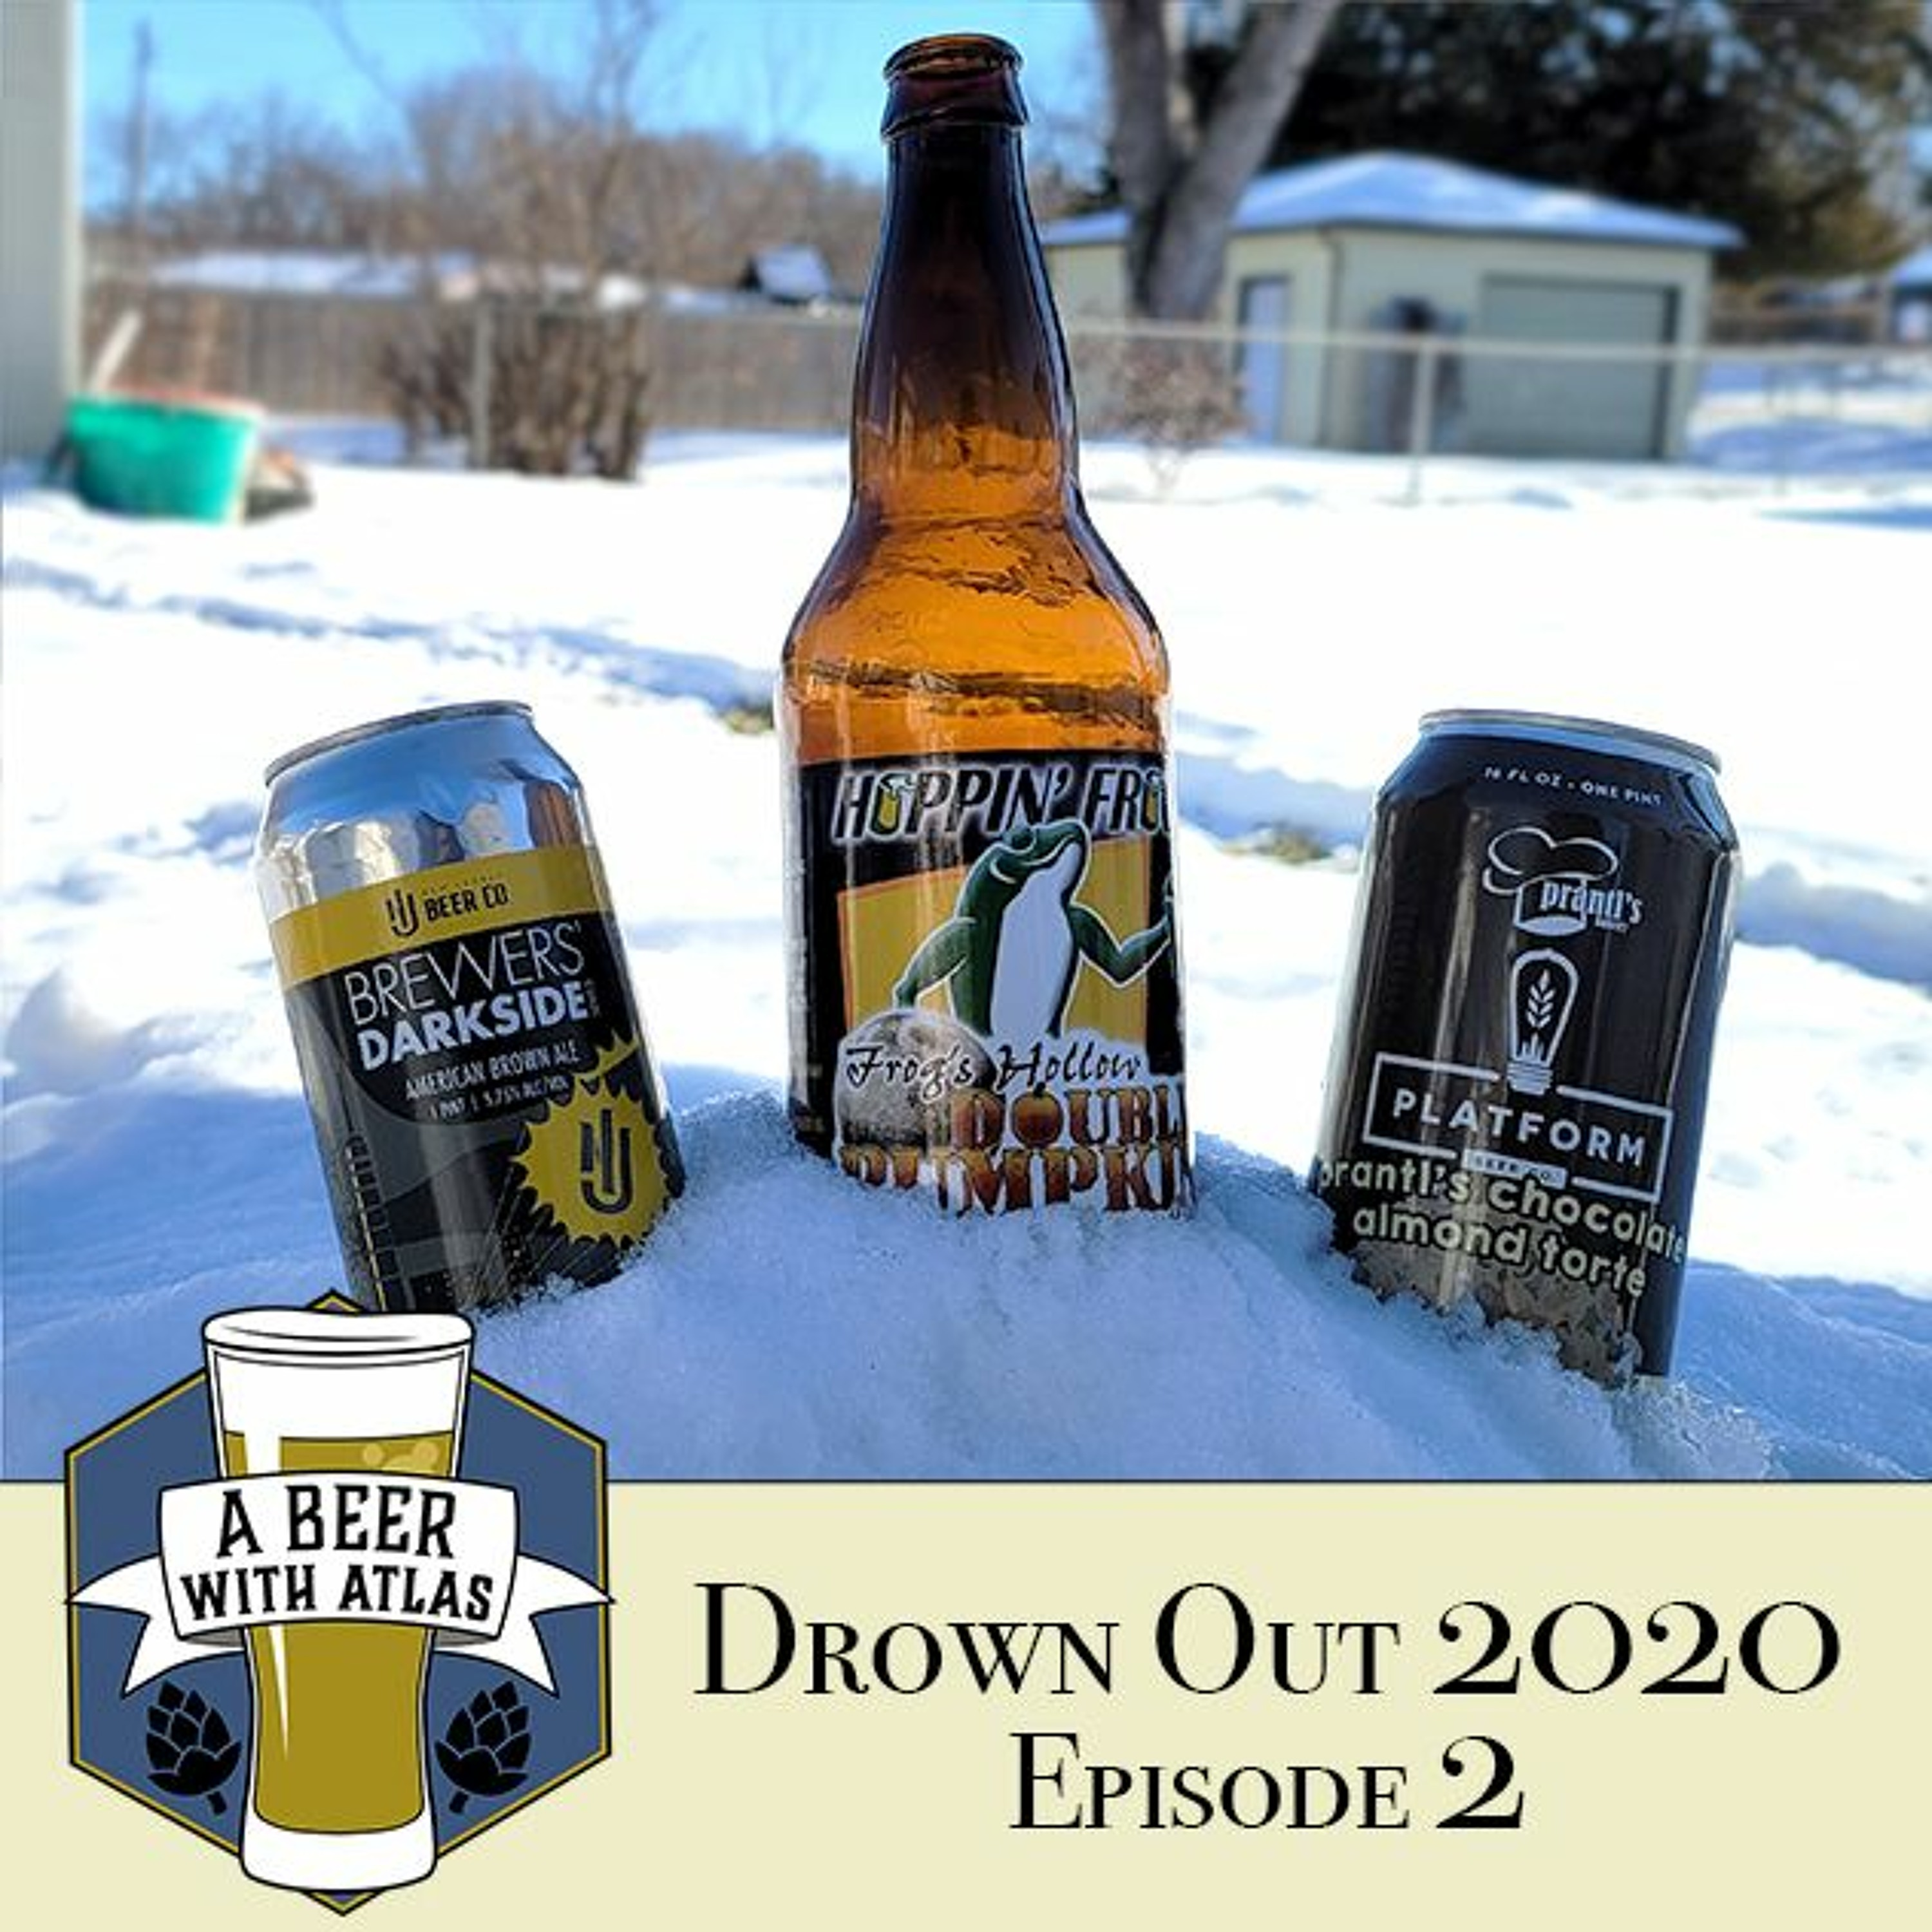 Drown Out 2020 - Ep 2 - Beer With Atlas 124 - the original travel nurse craft beer podcast